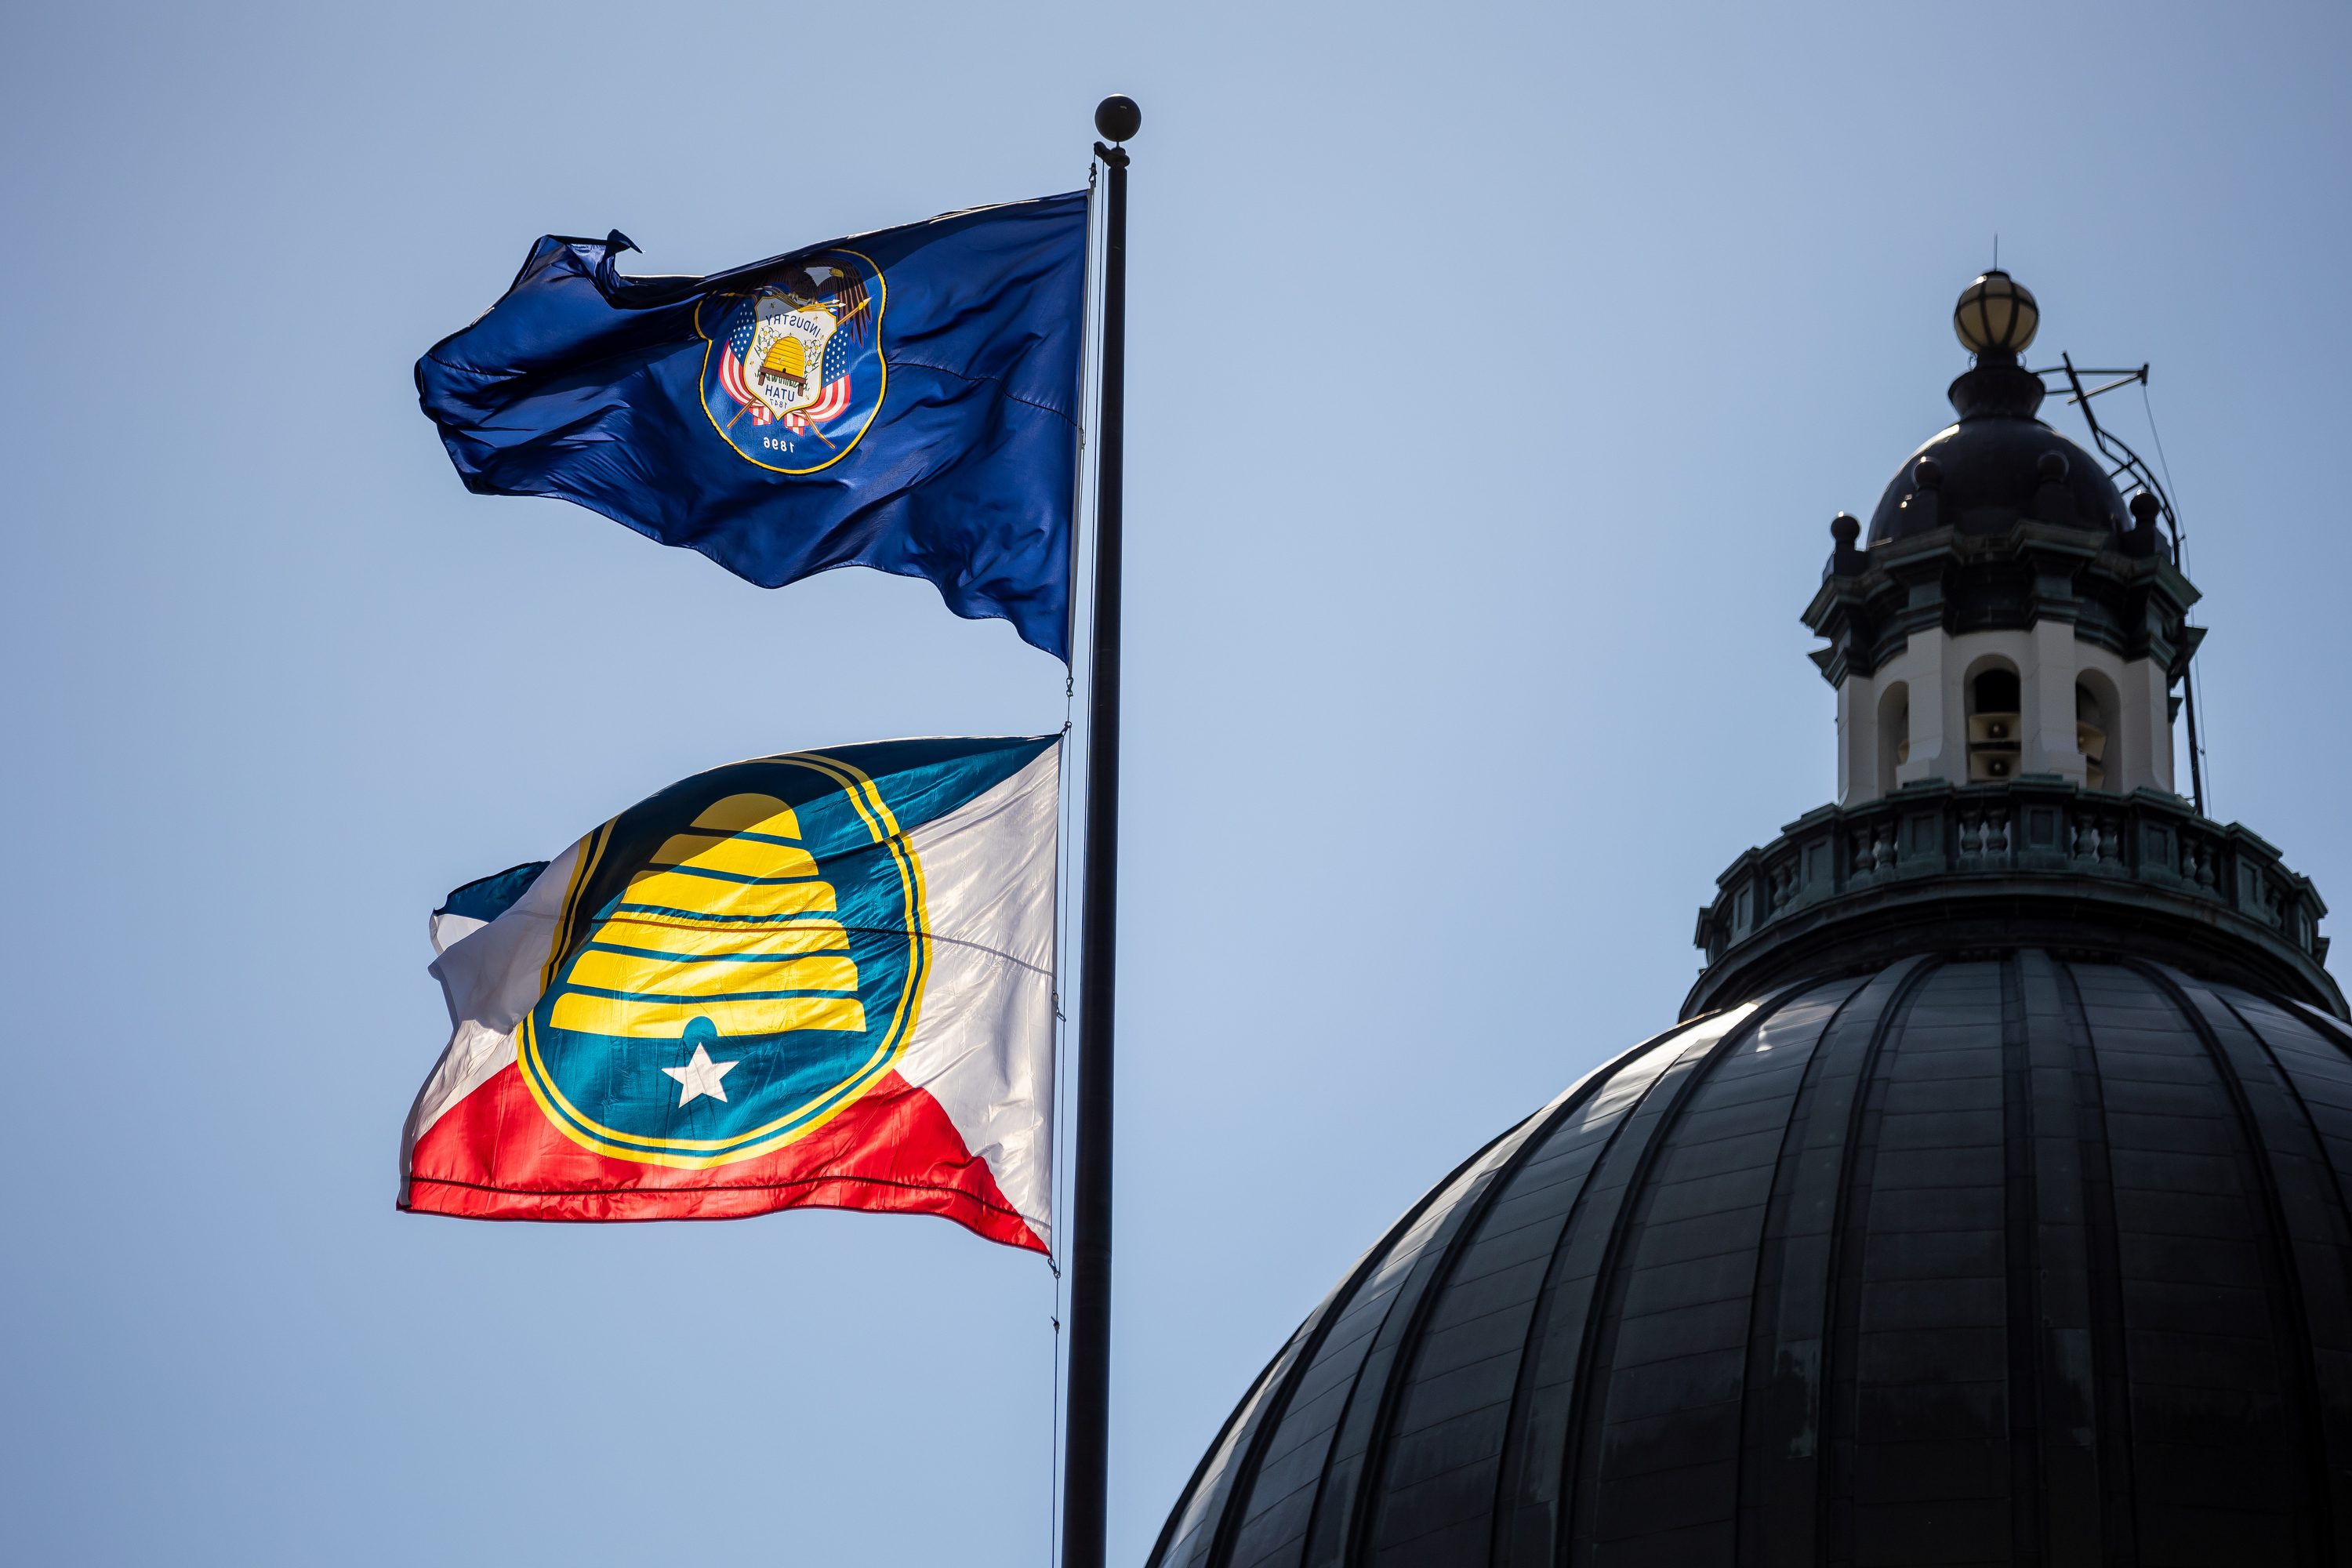 The Utah state flag, top, and the new commemorative state flag, below, fly atop the Capitol in Salt Lake City on Tuesday, July 13, 2021.